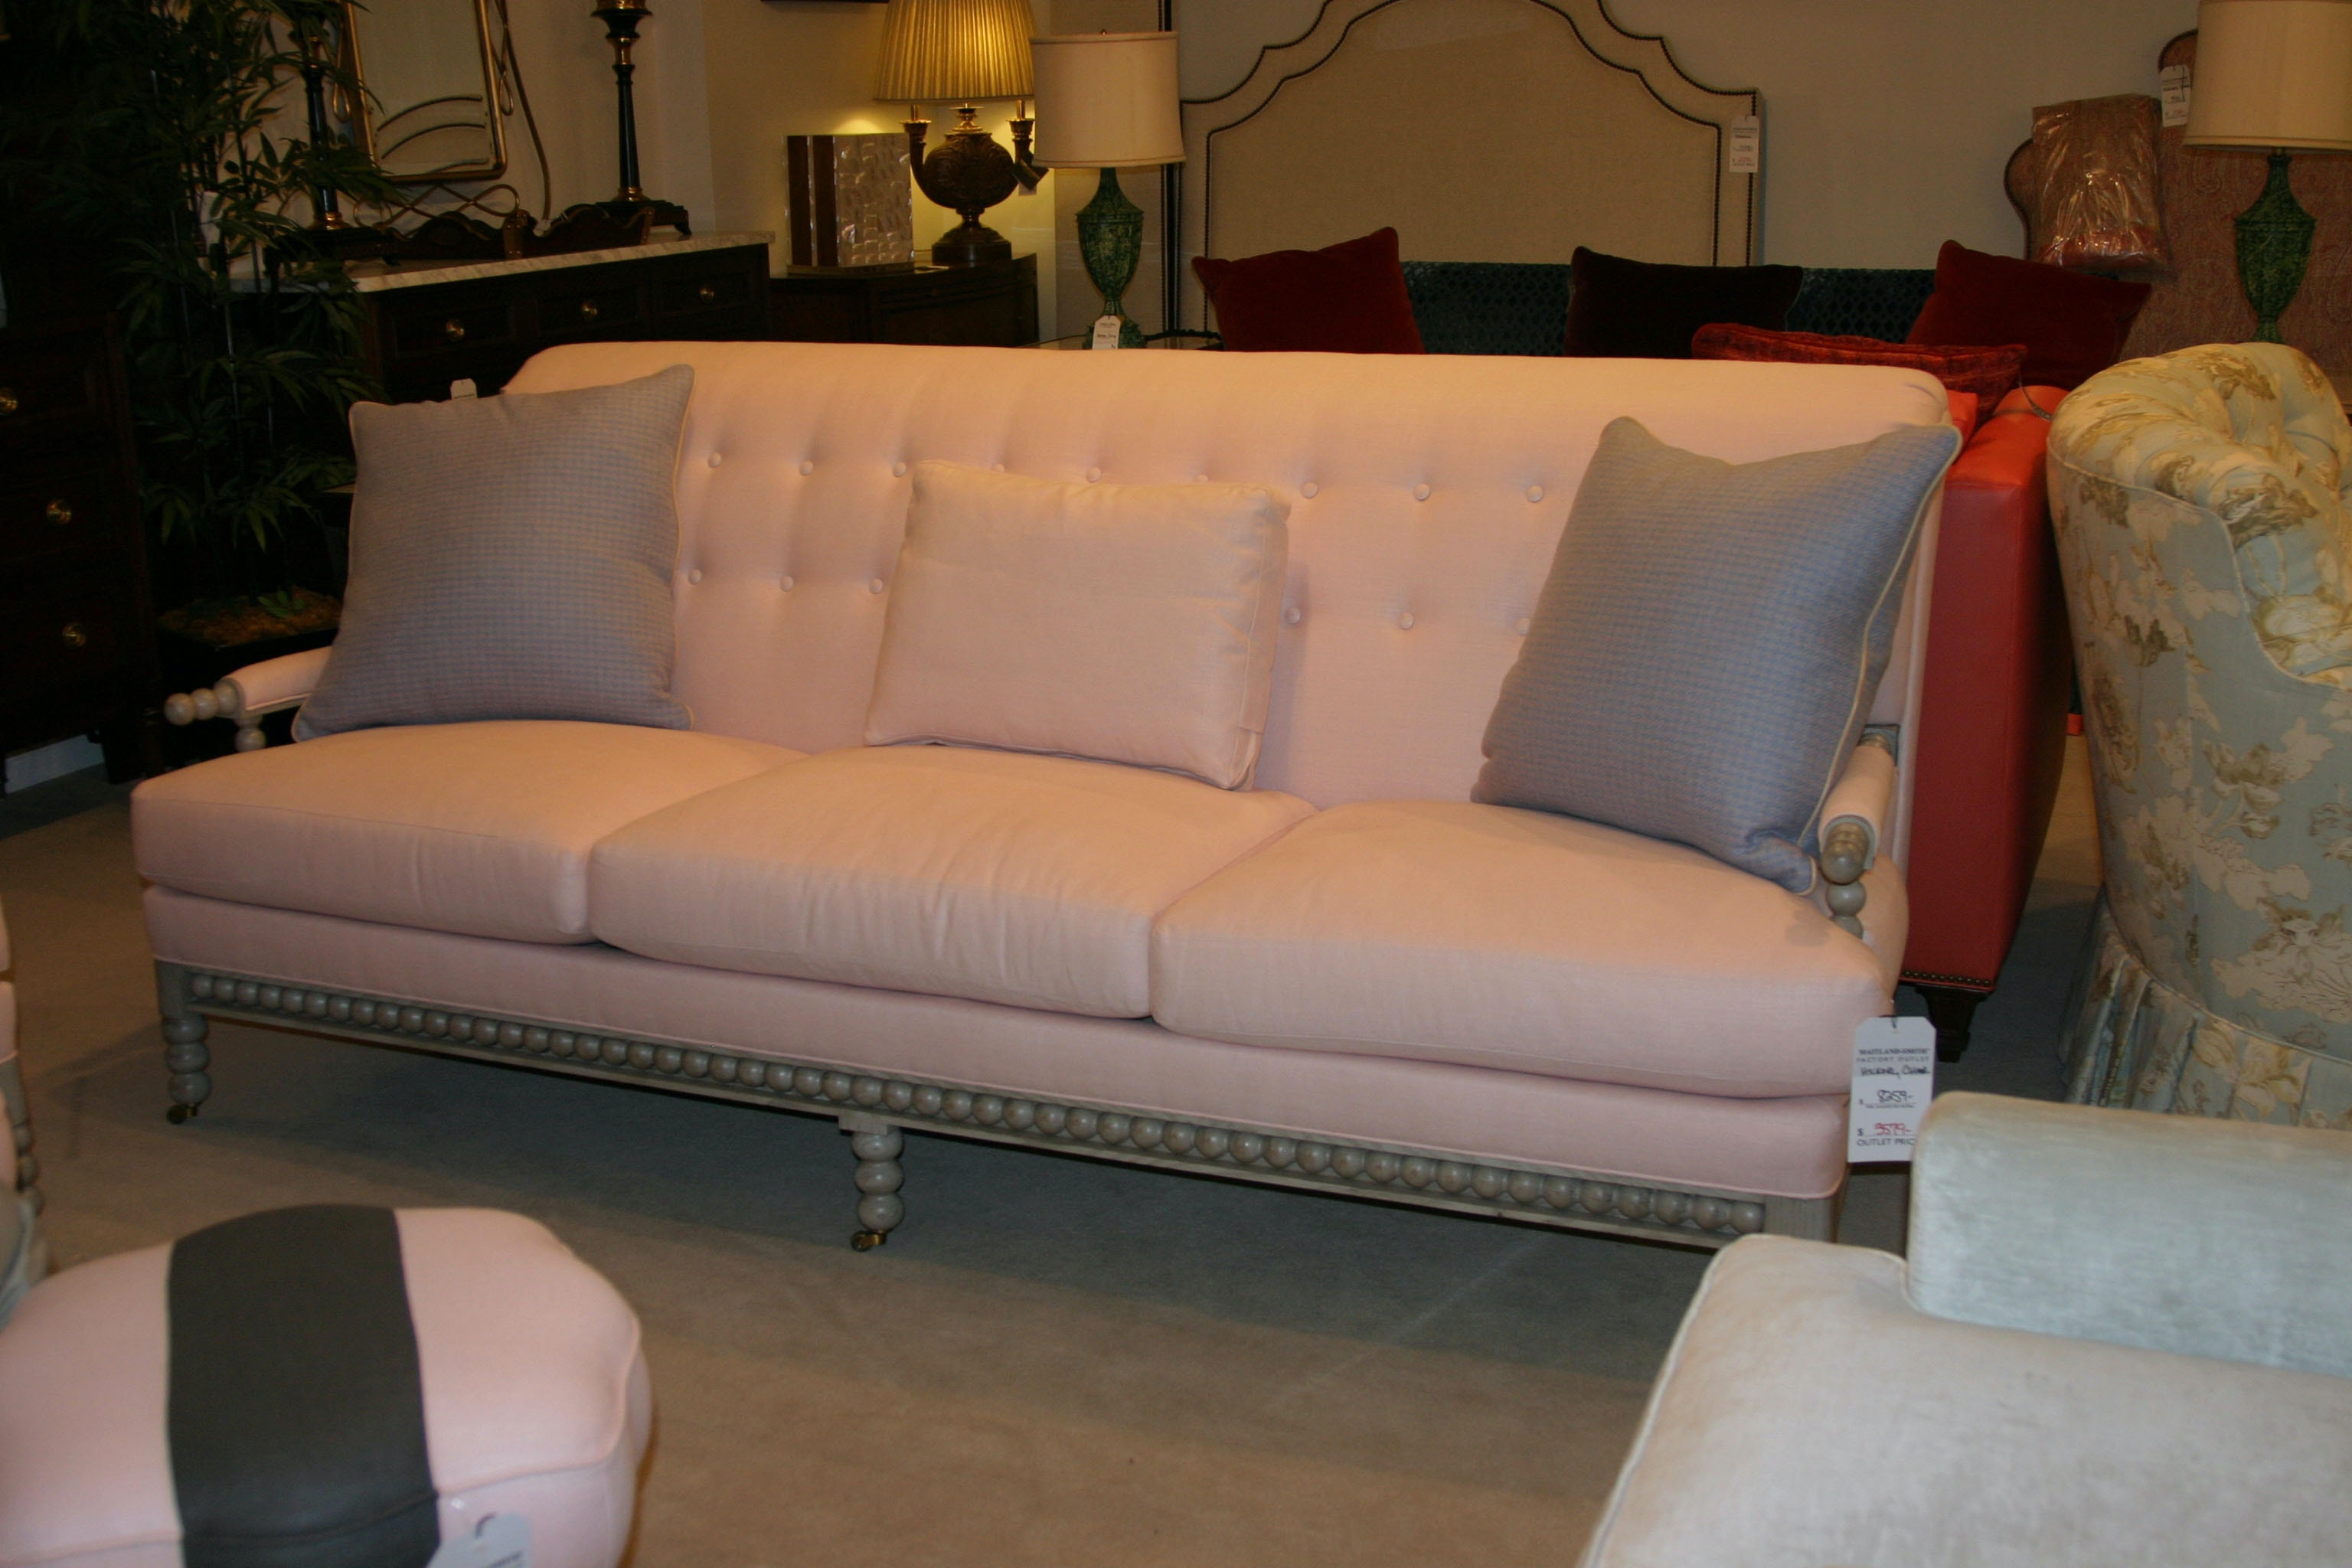 Living Room Furniture Hickory Nc living room sofas | furniture | hickory furniture mart in hickory, nc